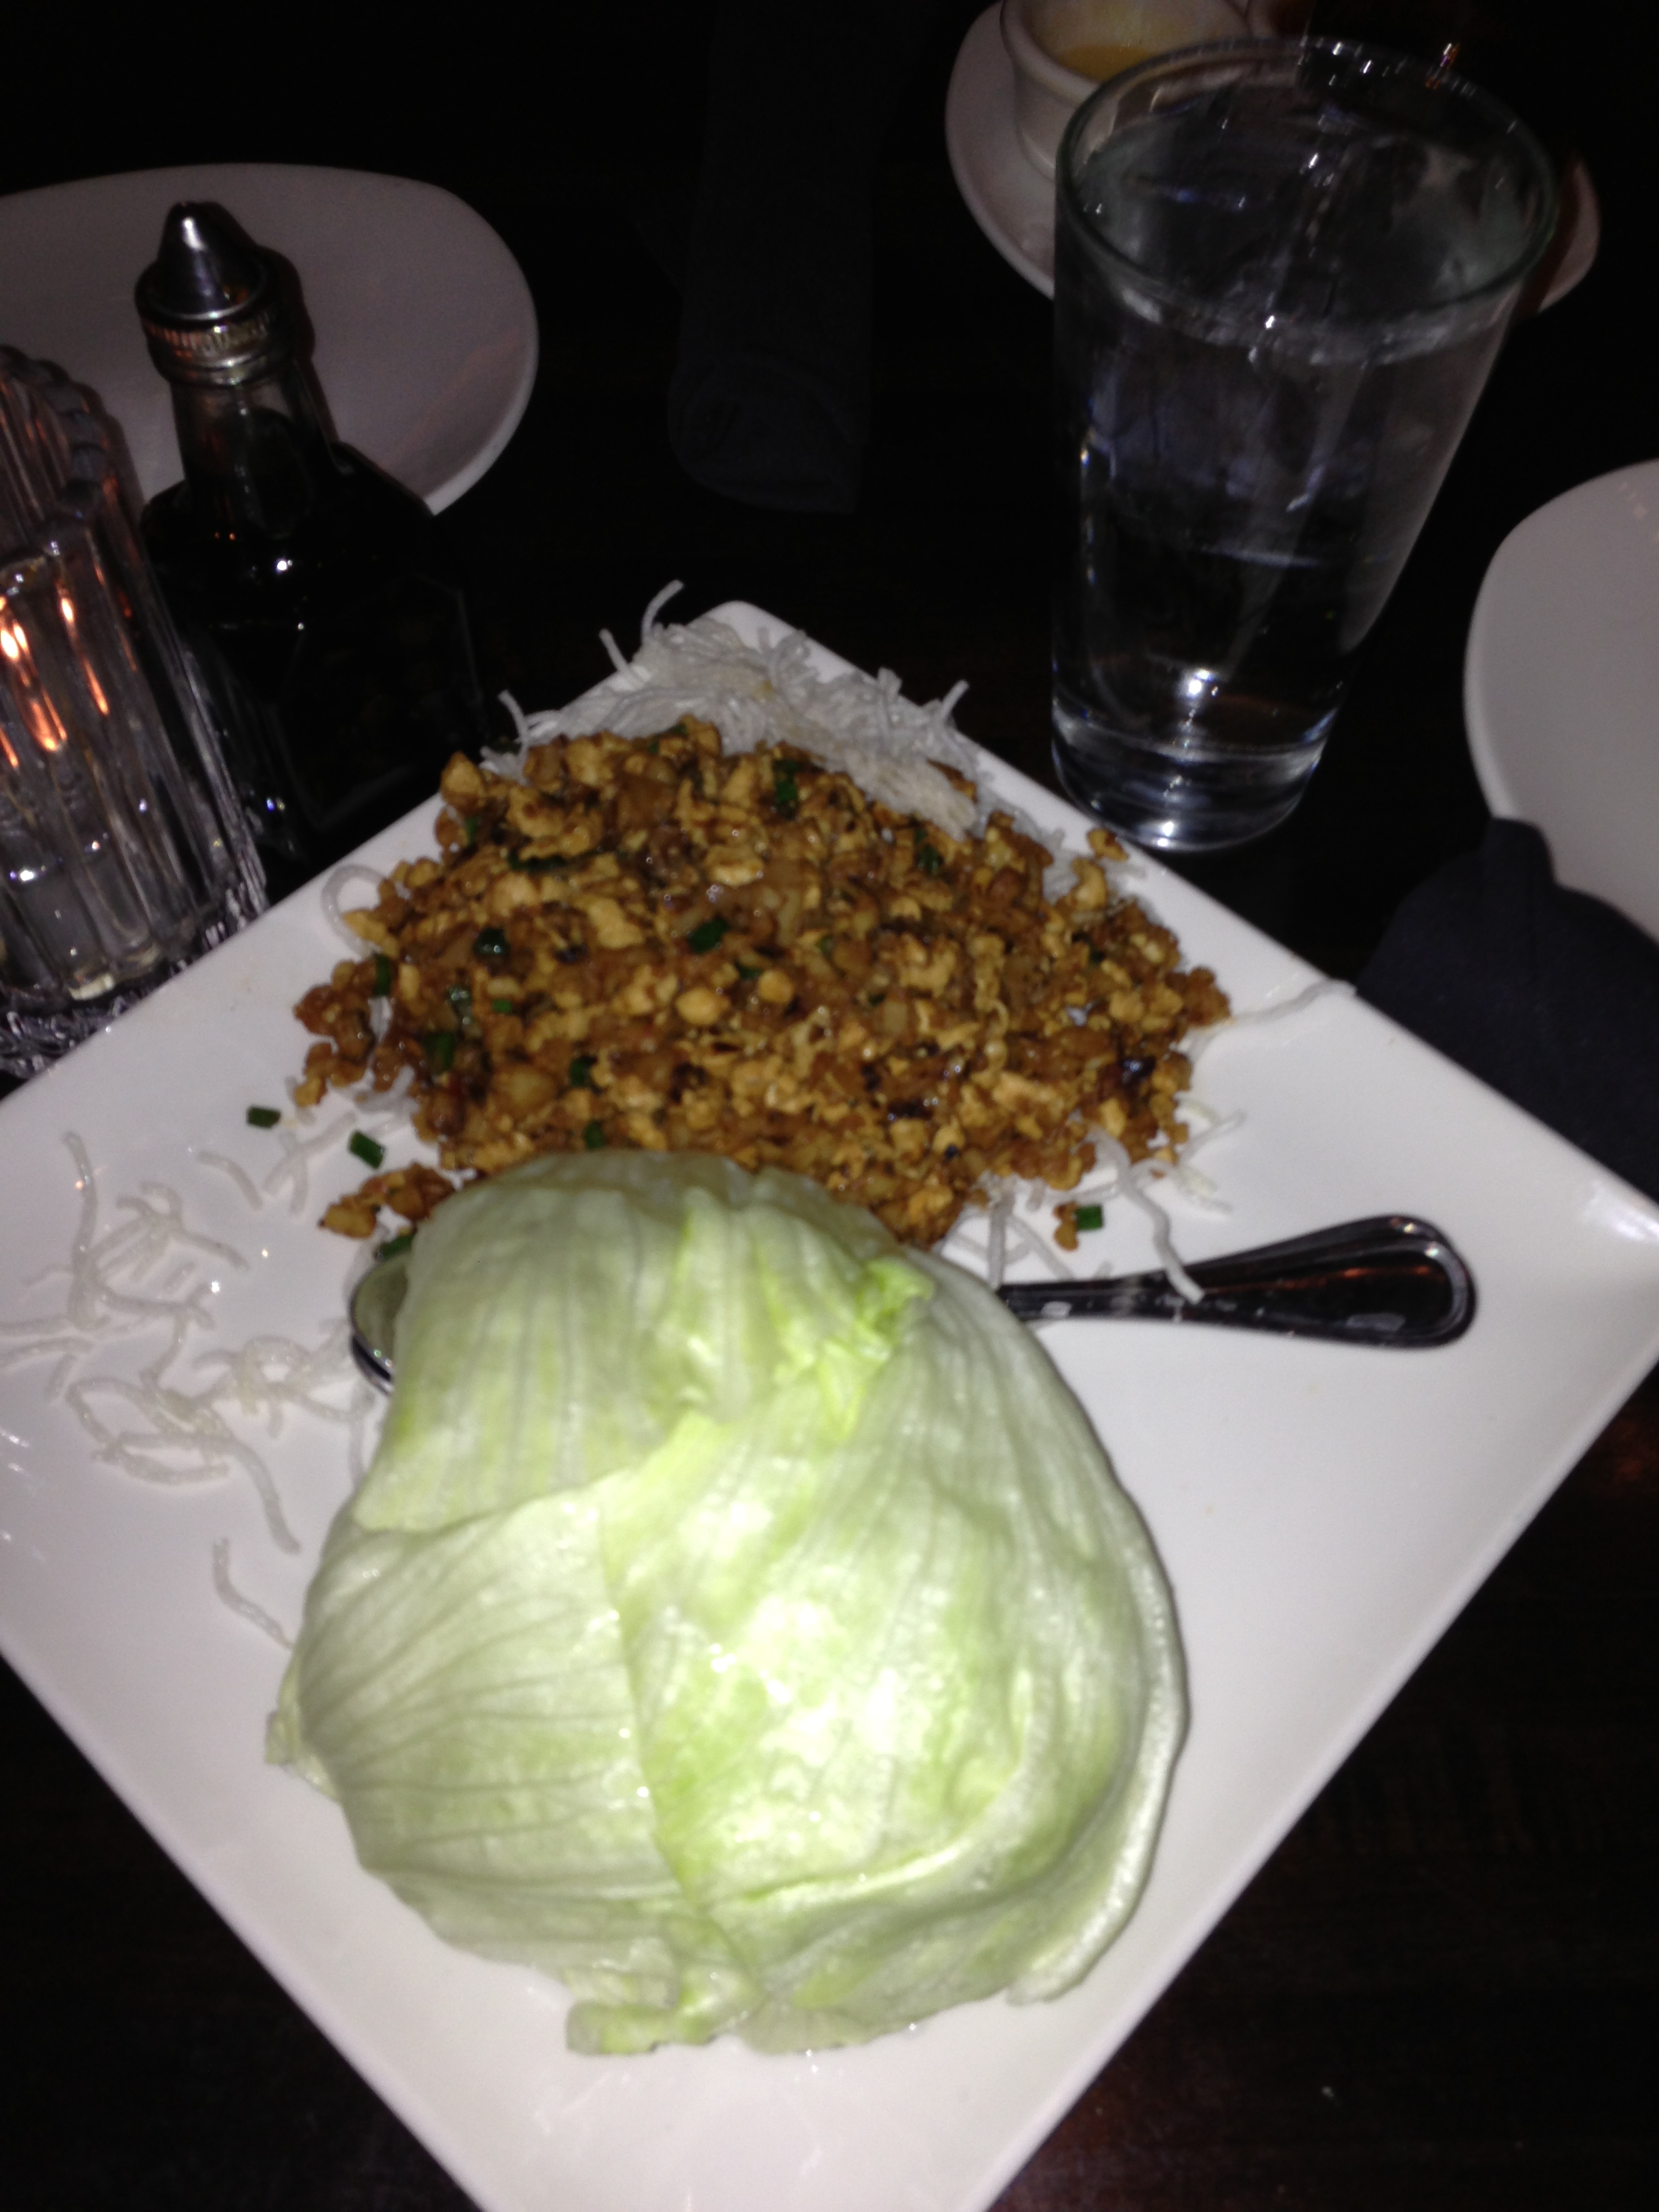 The delicious lettuce wraps we had this past Saturday.